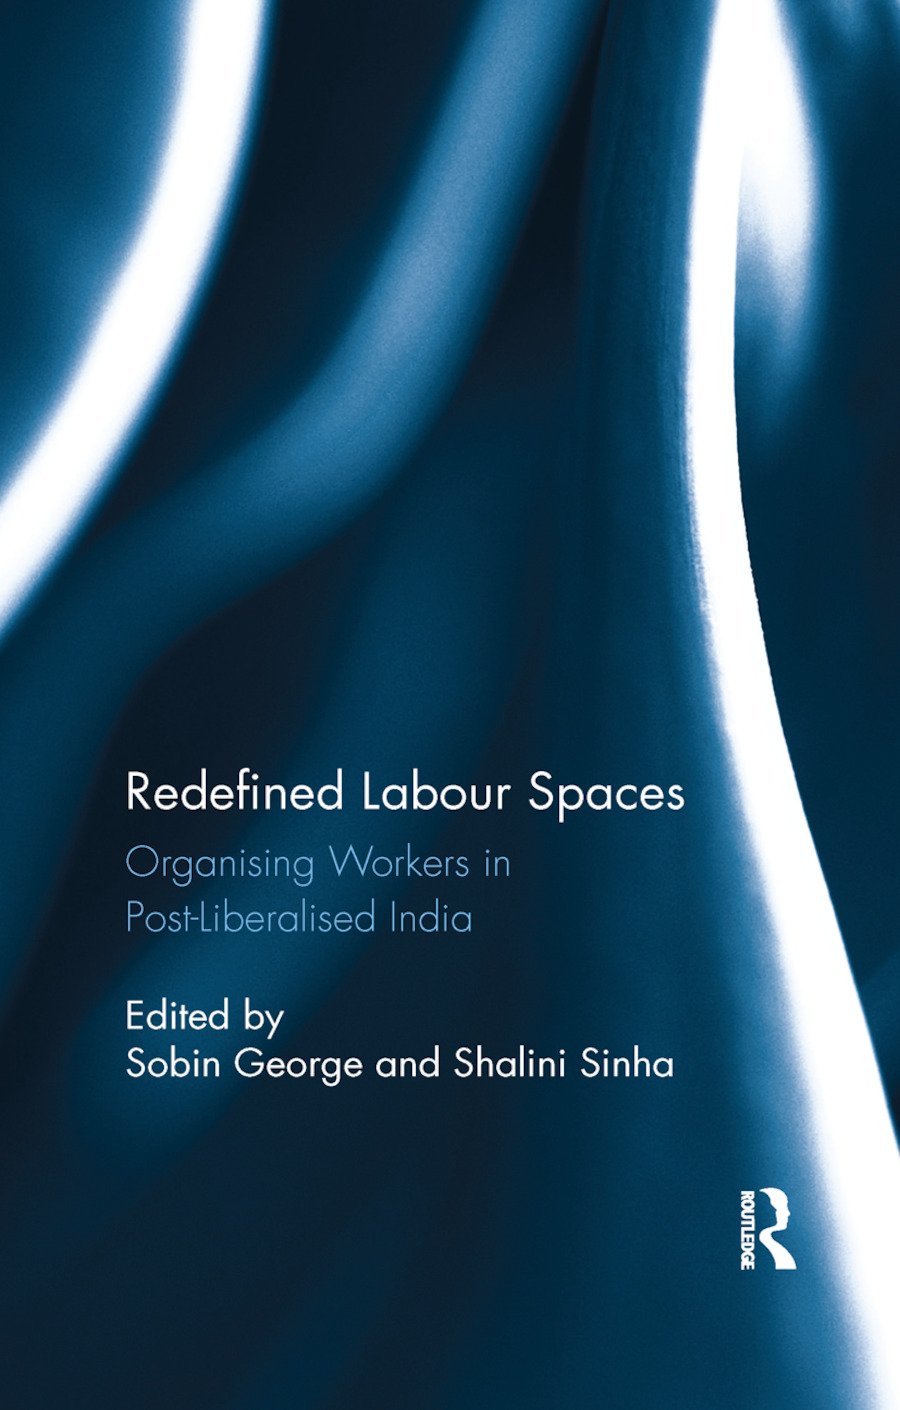 Redefined Labour Spaces: Organising Workers in Post-Liberalised India book cover